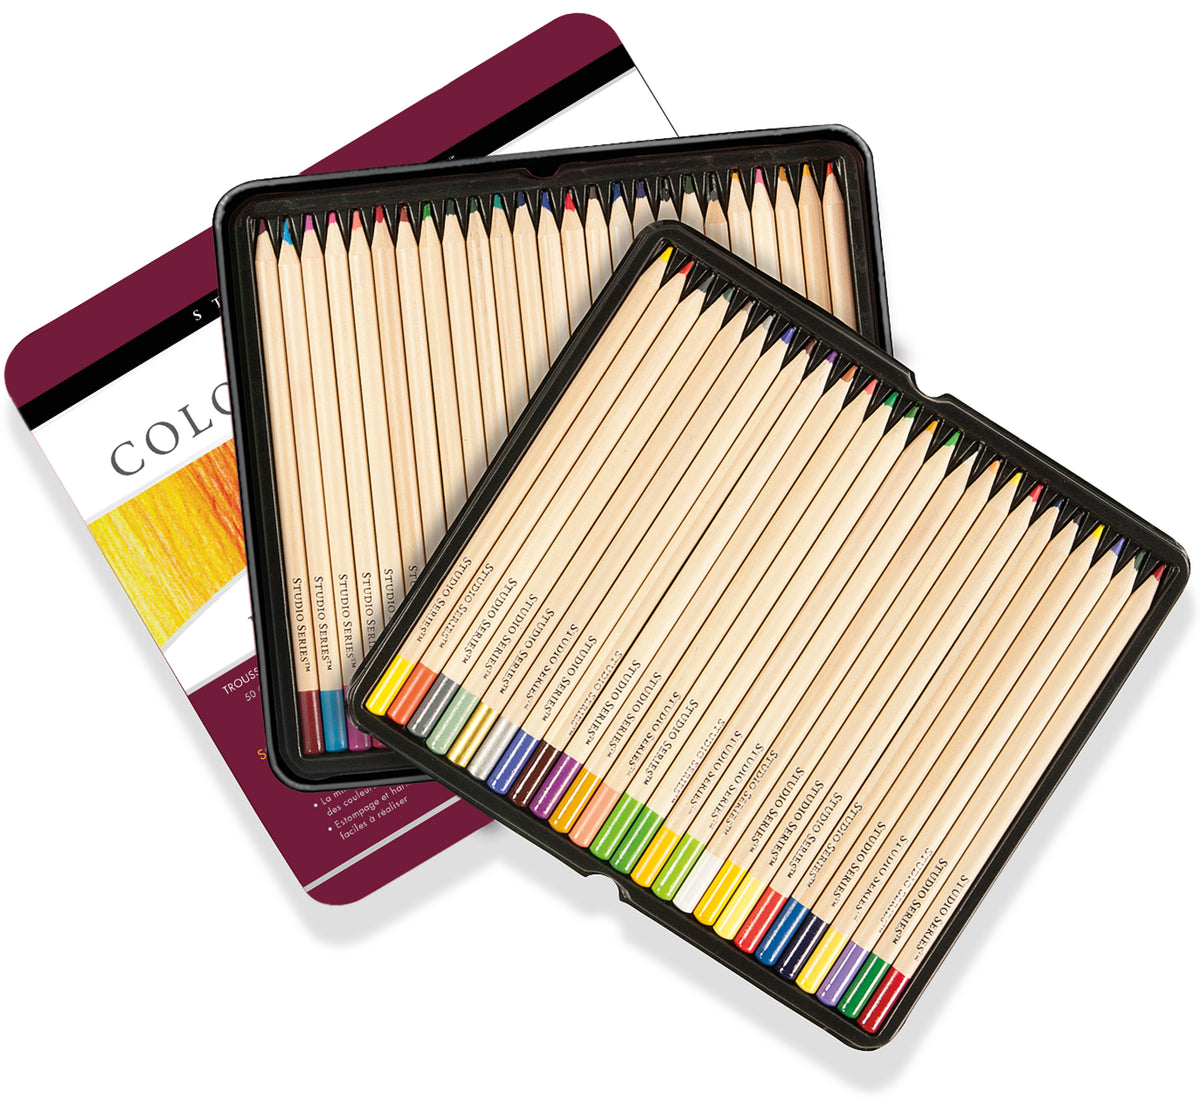 Studio Series Deluxe Colored Pencil Set (Set of 50) - Heart of the Home PA